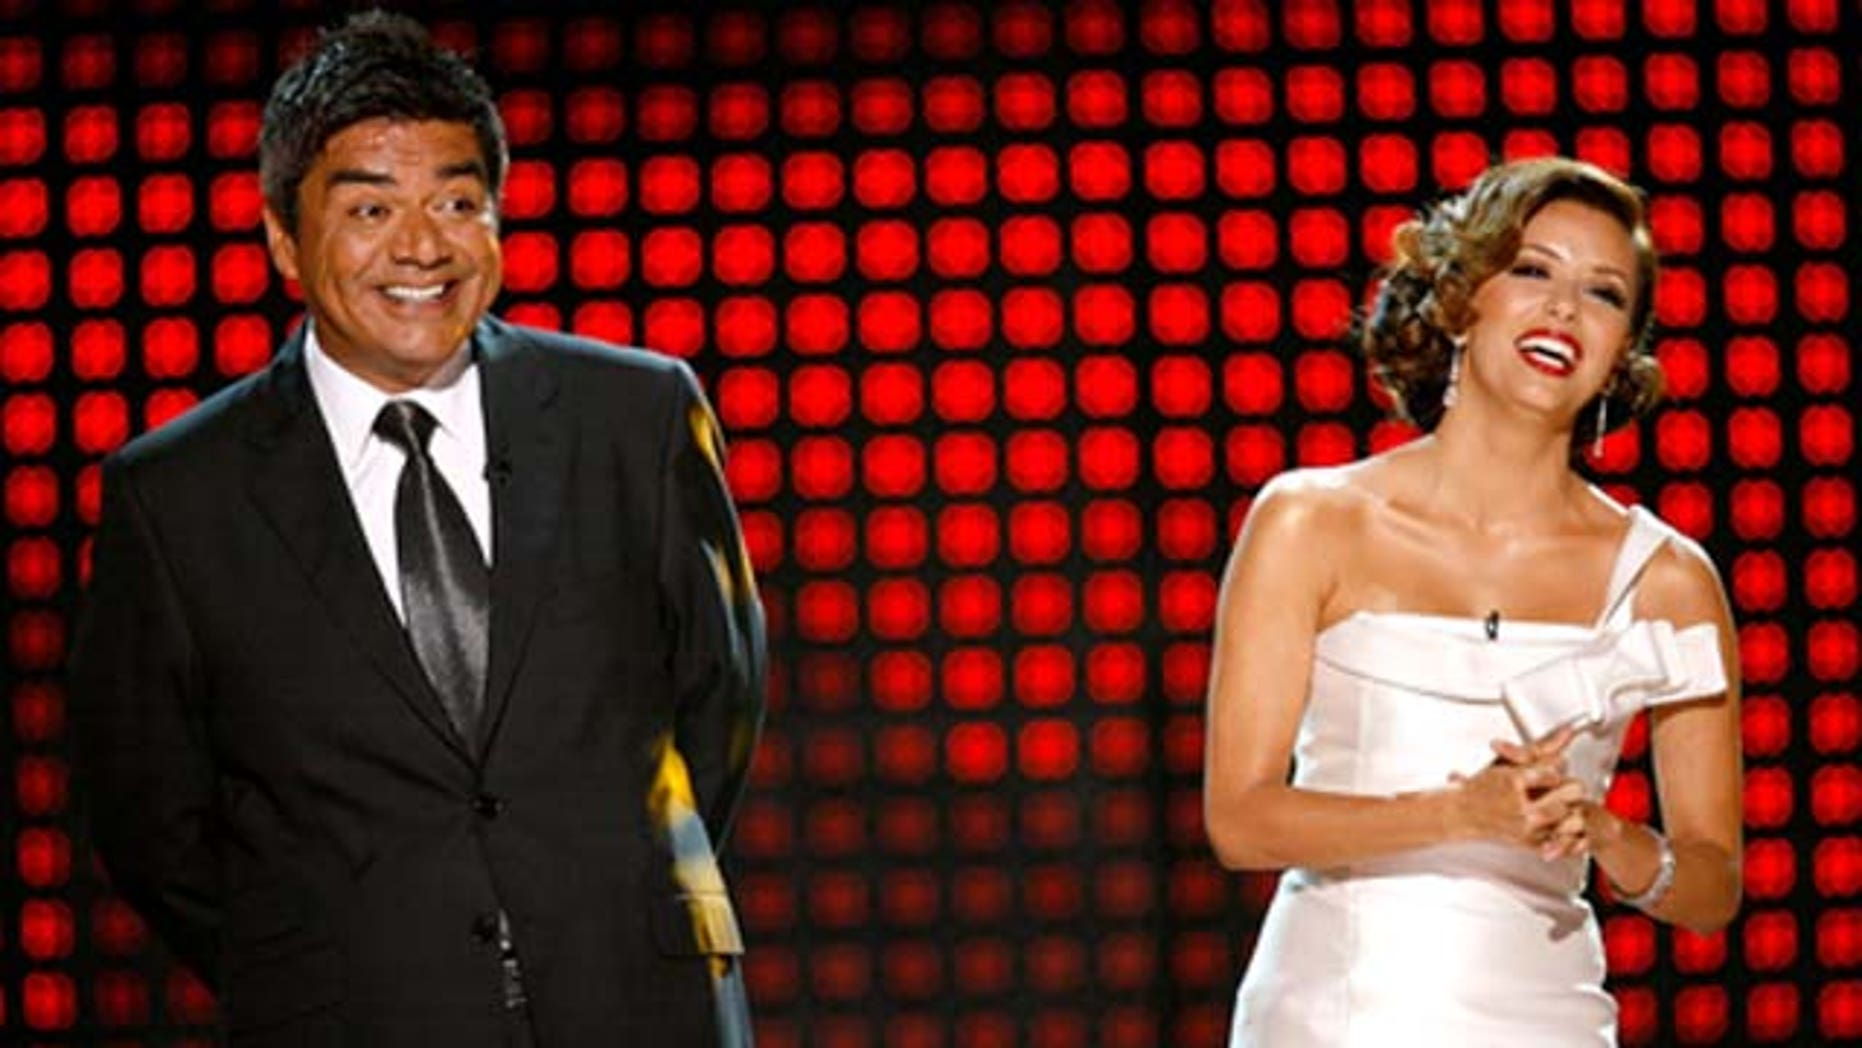 September 17, 2009: George Lopez and Eva Longoria appear onstage at the 2009 ALMA Awards held at Royce Hall in Los Angeles, Calif.